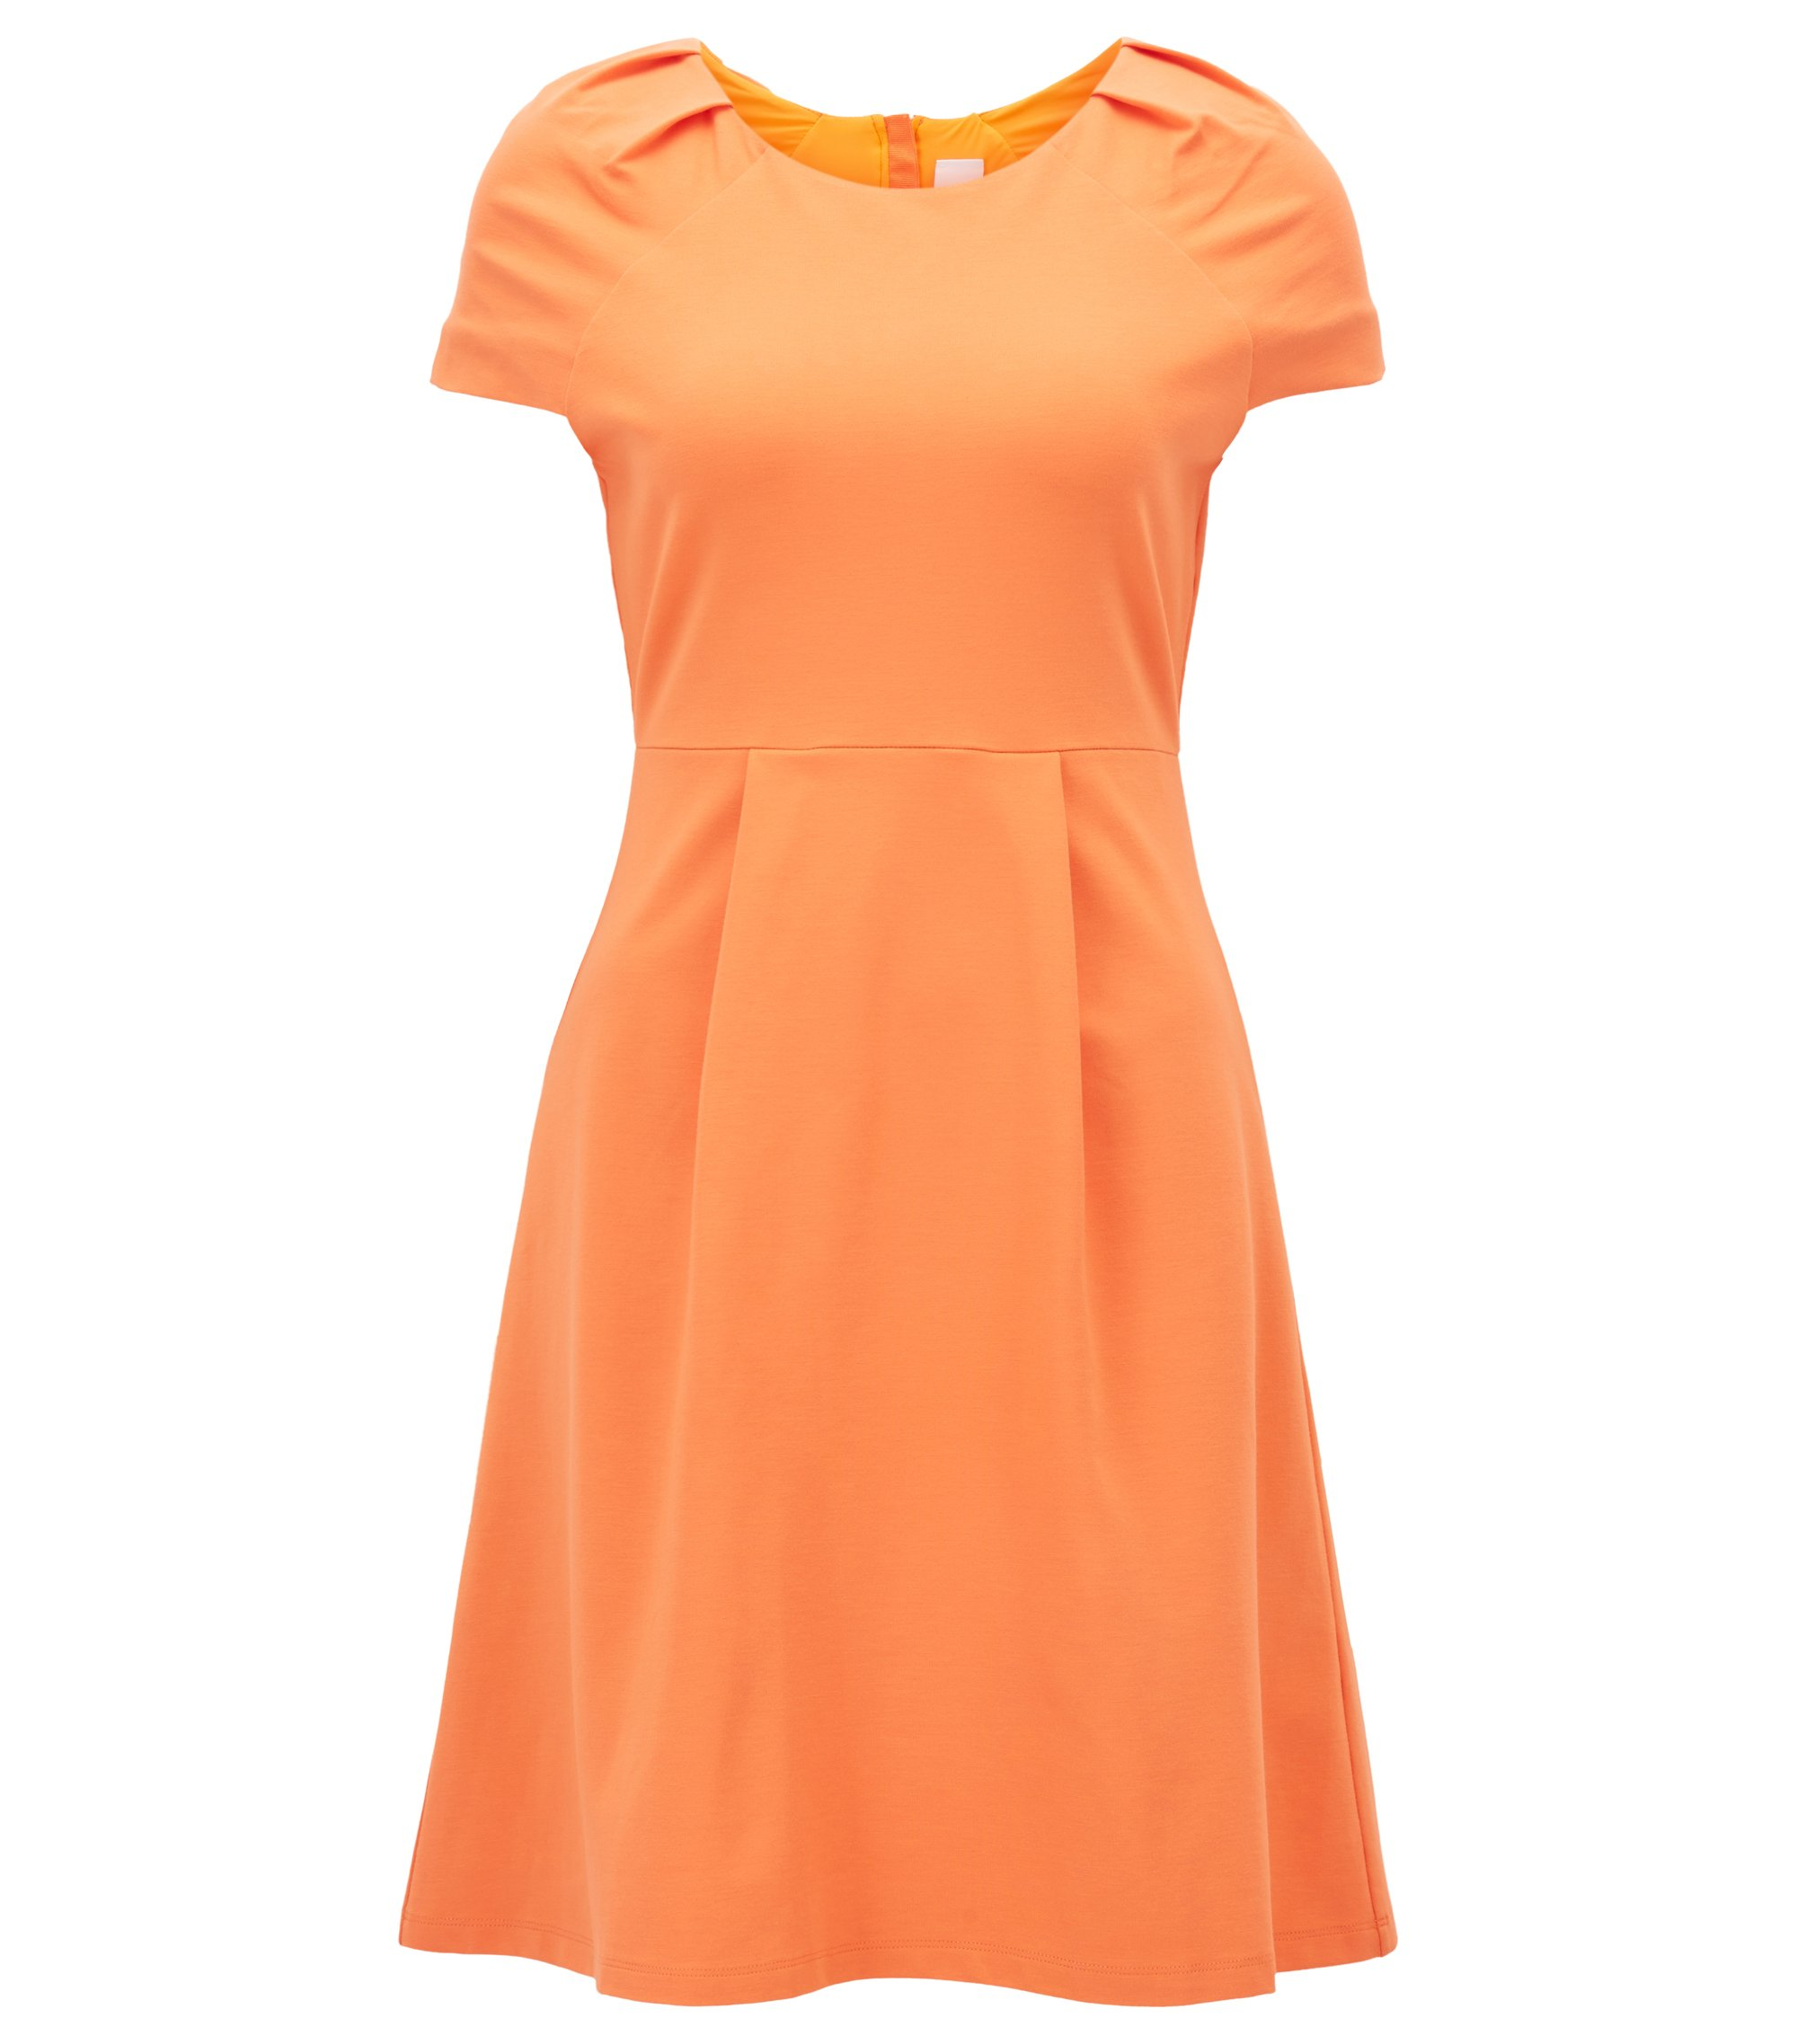 Tailliertes Kleid aus Interlock-Jersey mit Plissee-Detail, Orange